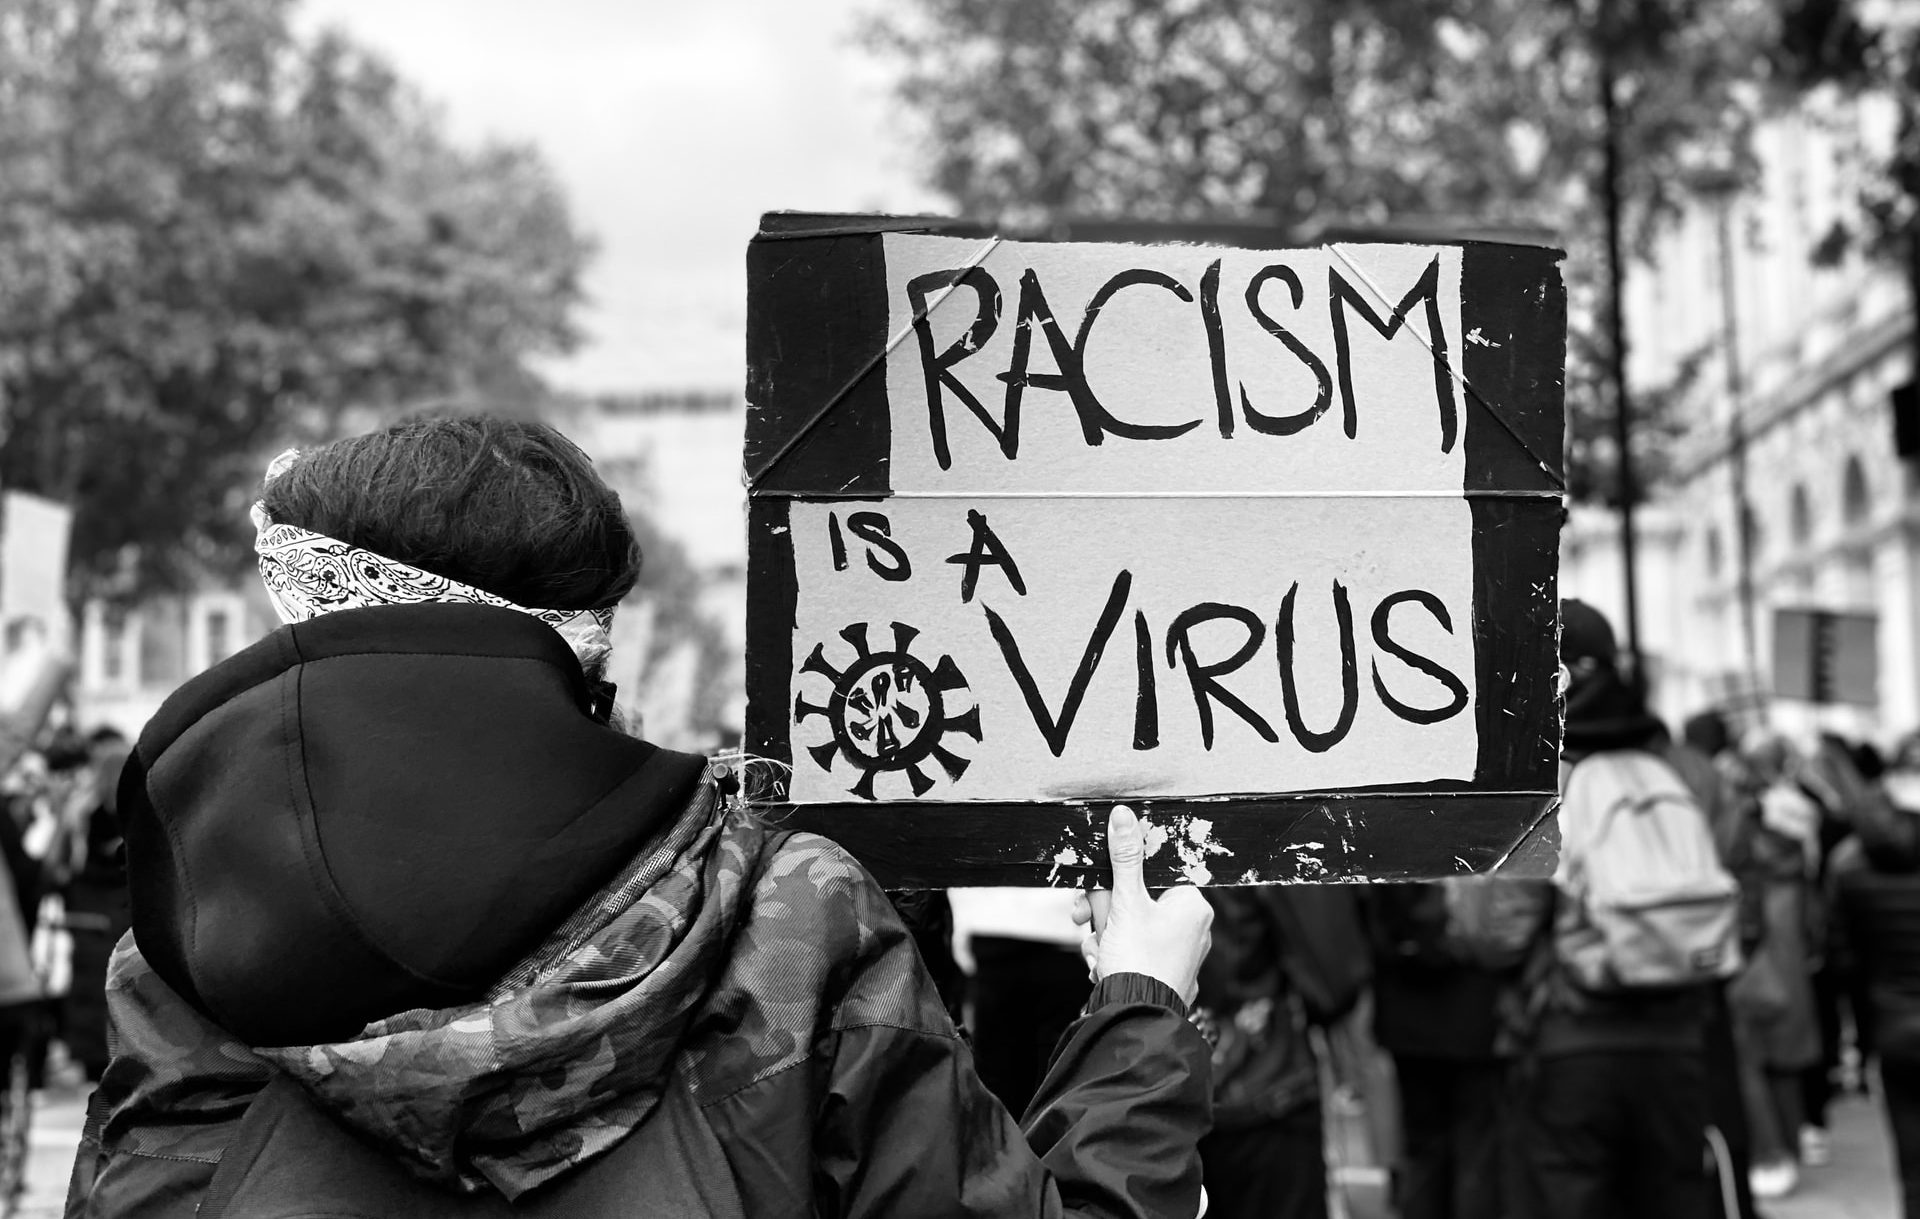 Racism in healthcare and COVID-19 – Expert Reaction